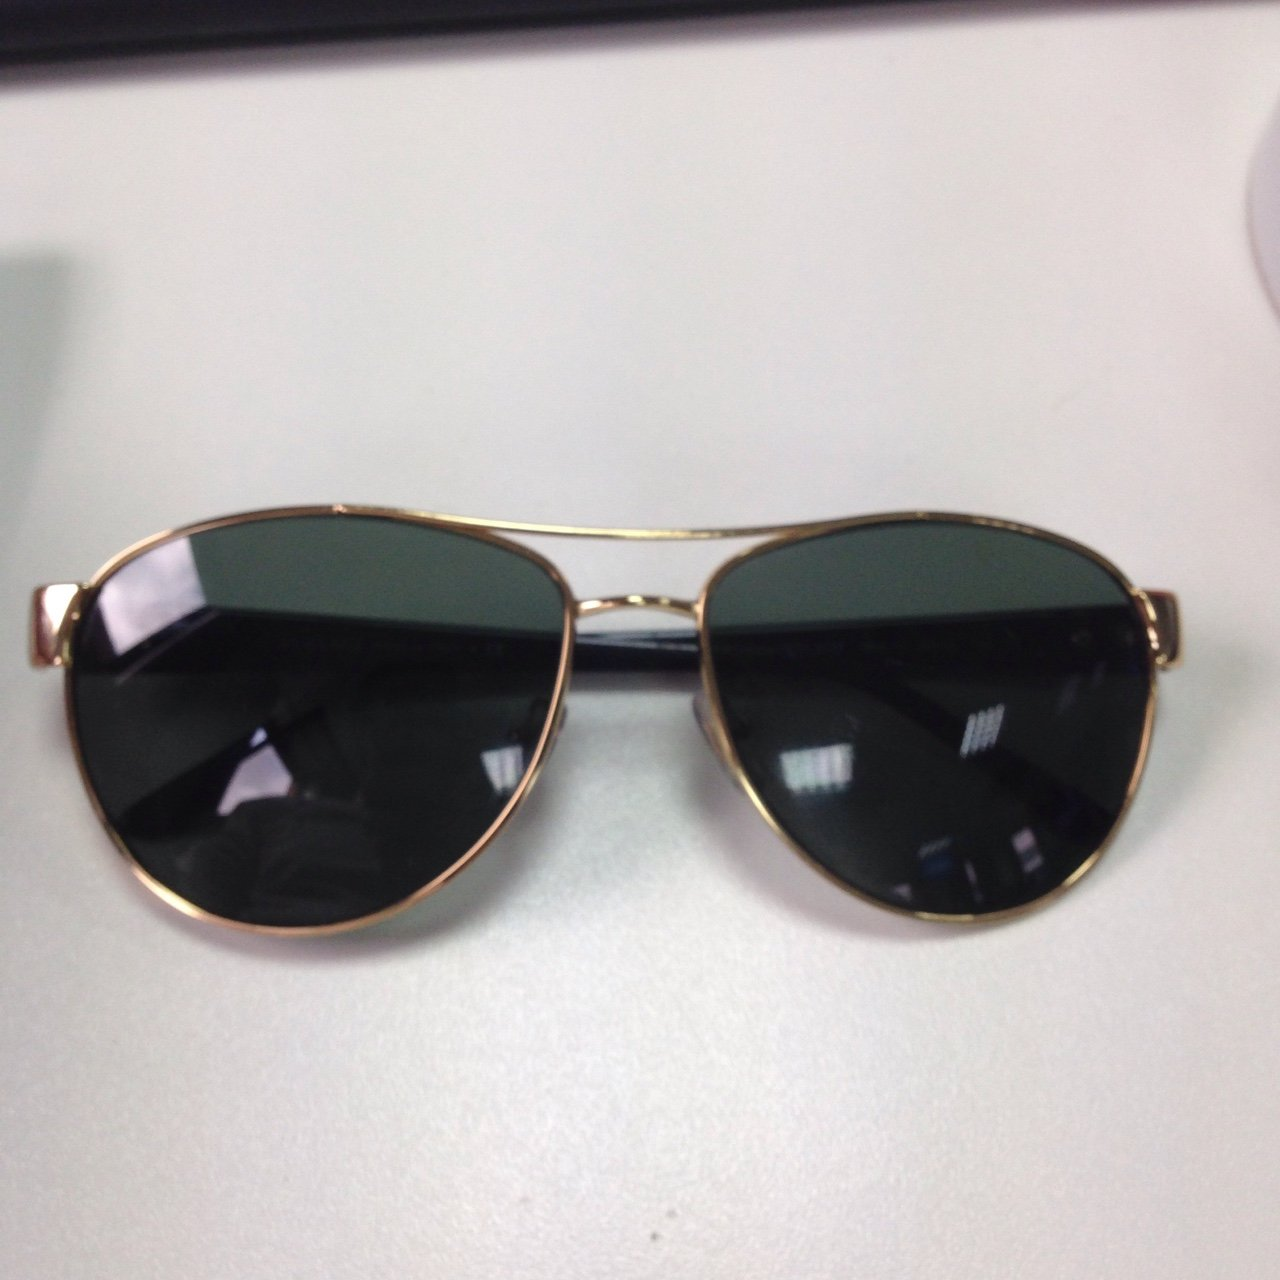 e68fdde0a4 Authentic versace sunglasses - Depop